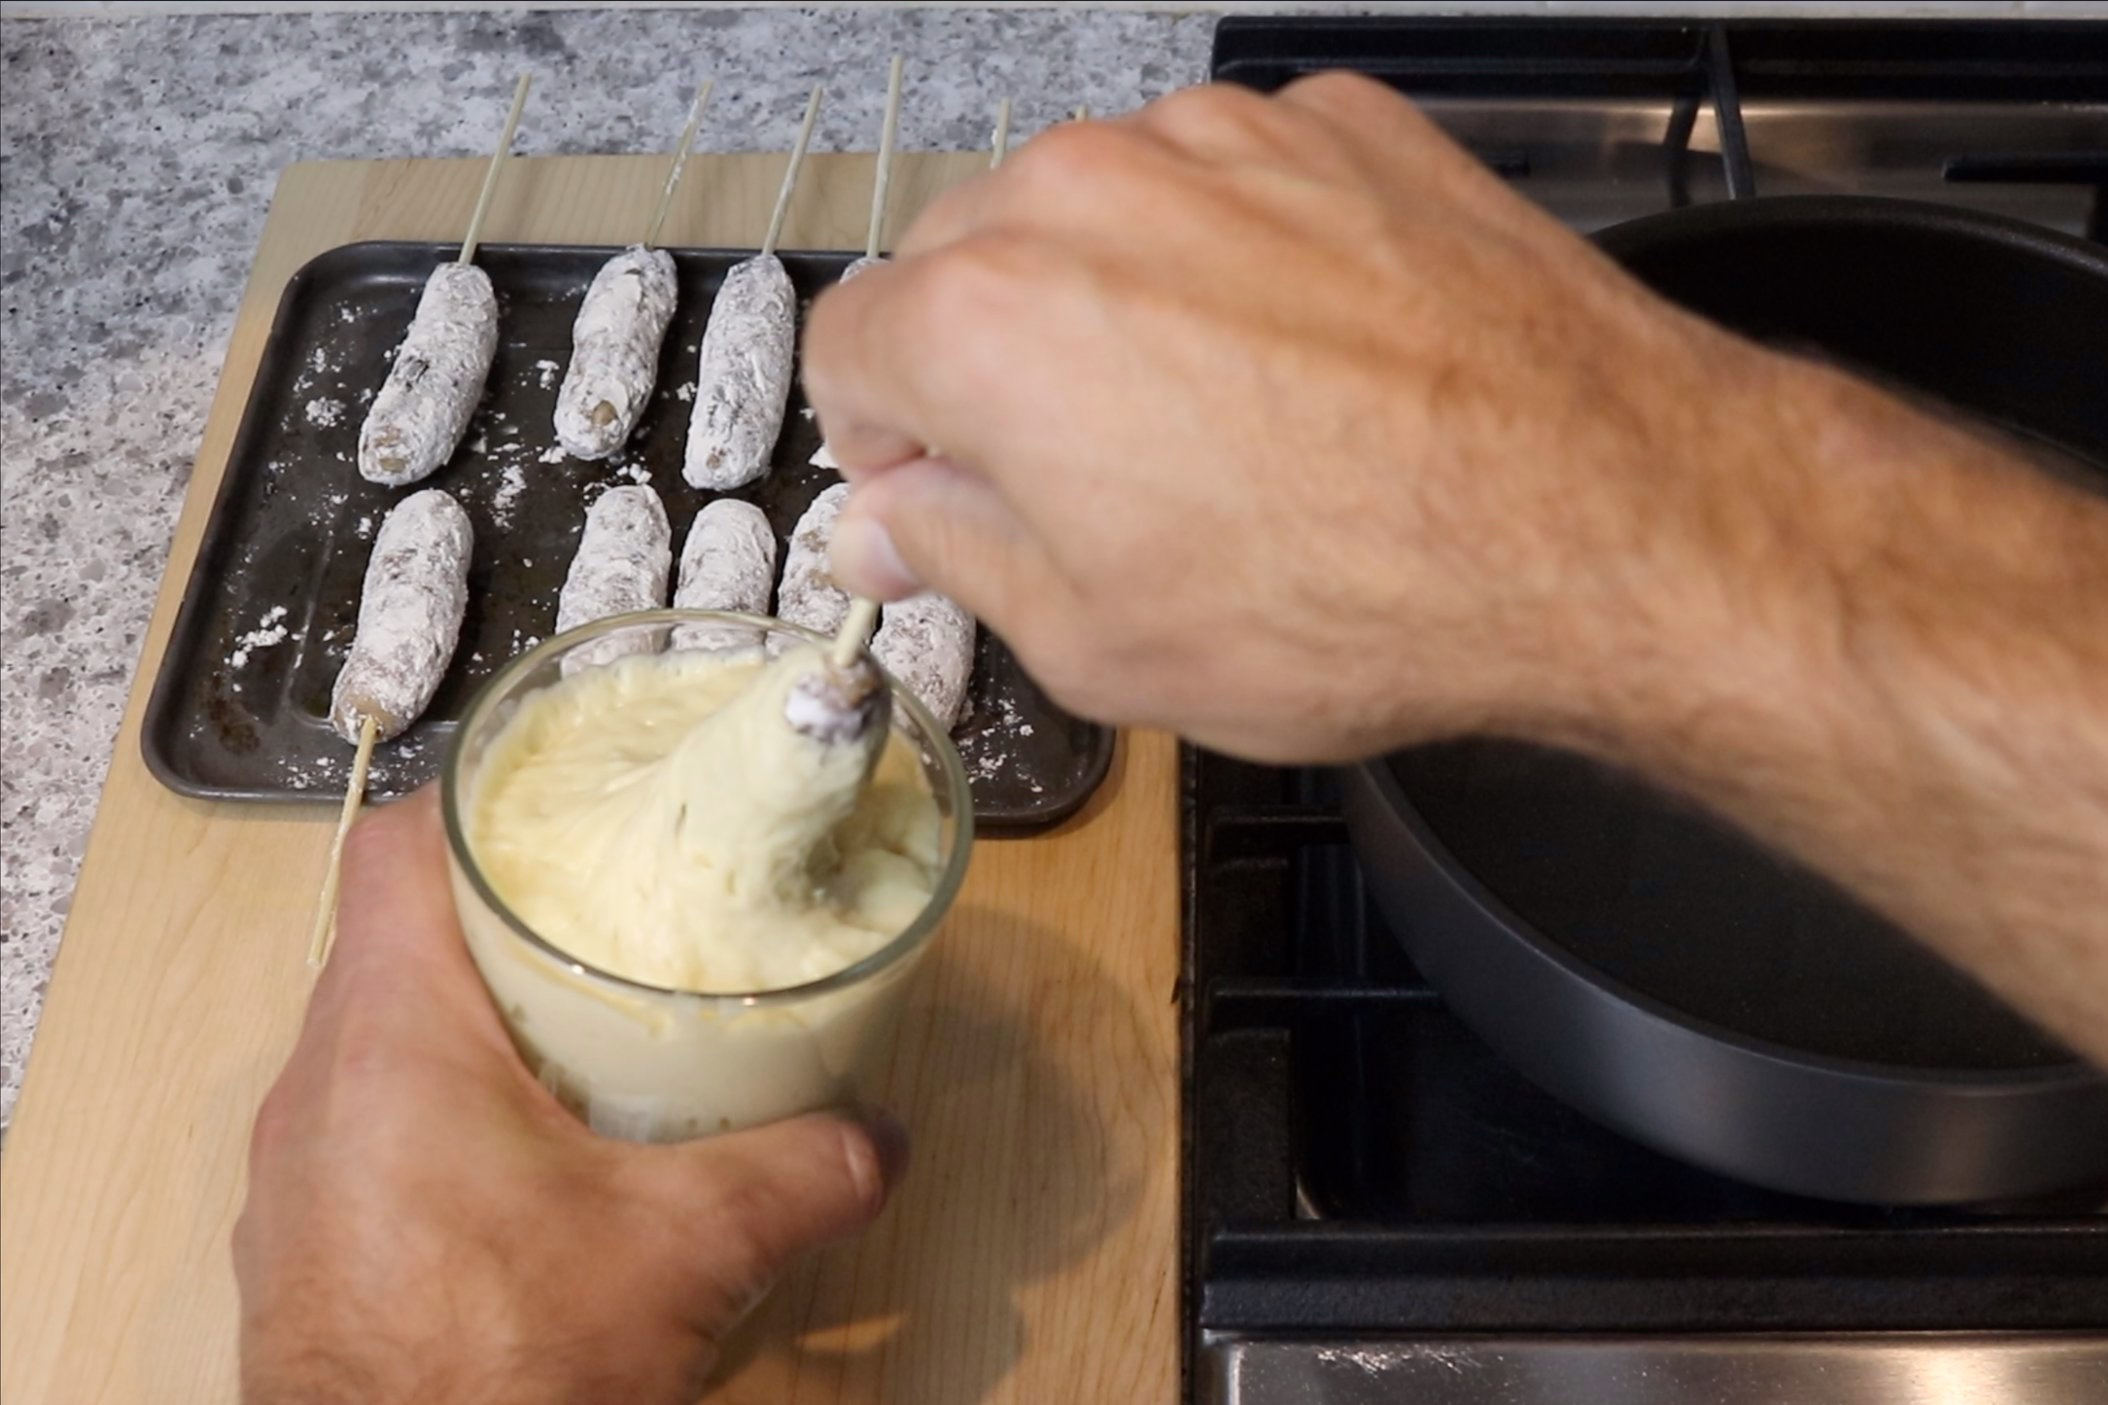 9. Dip the skewered sausages in pancake batter, spinning the skewer until the sausage is lightly coated. -